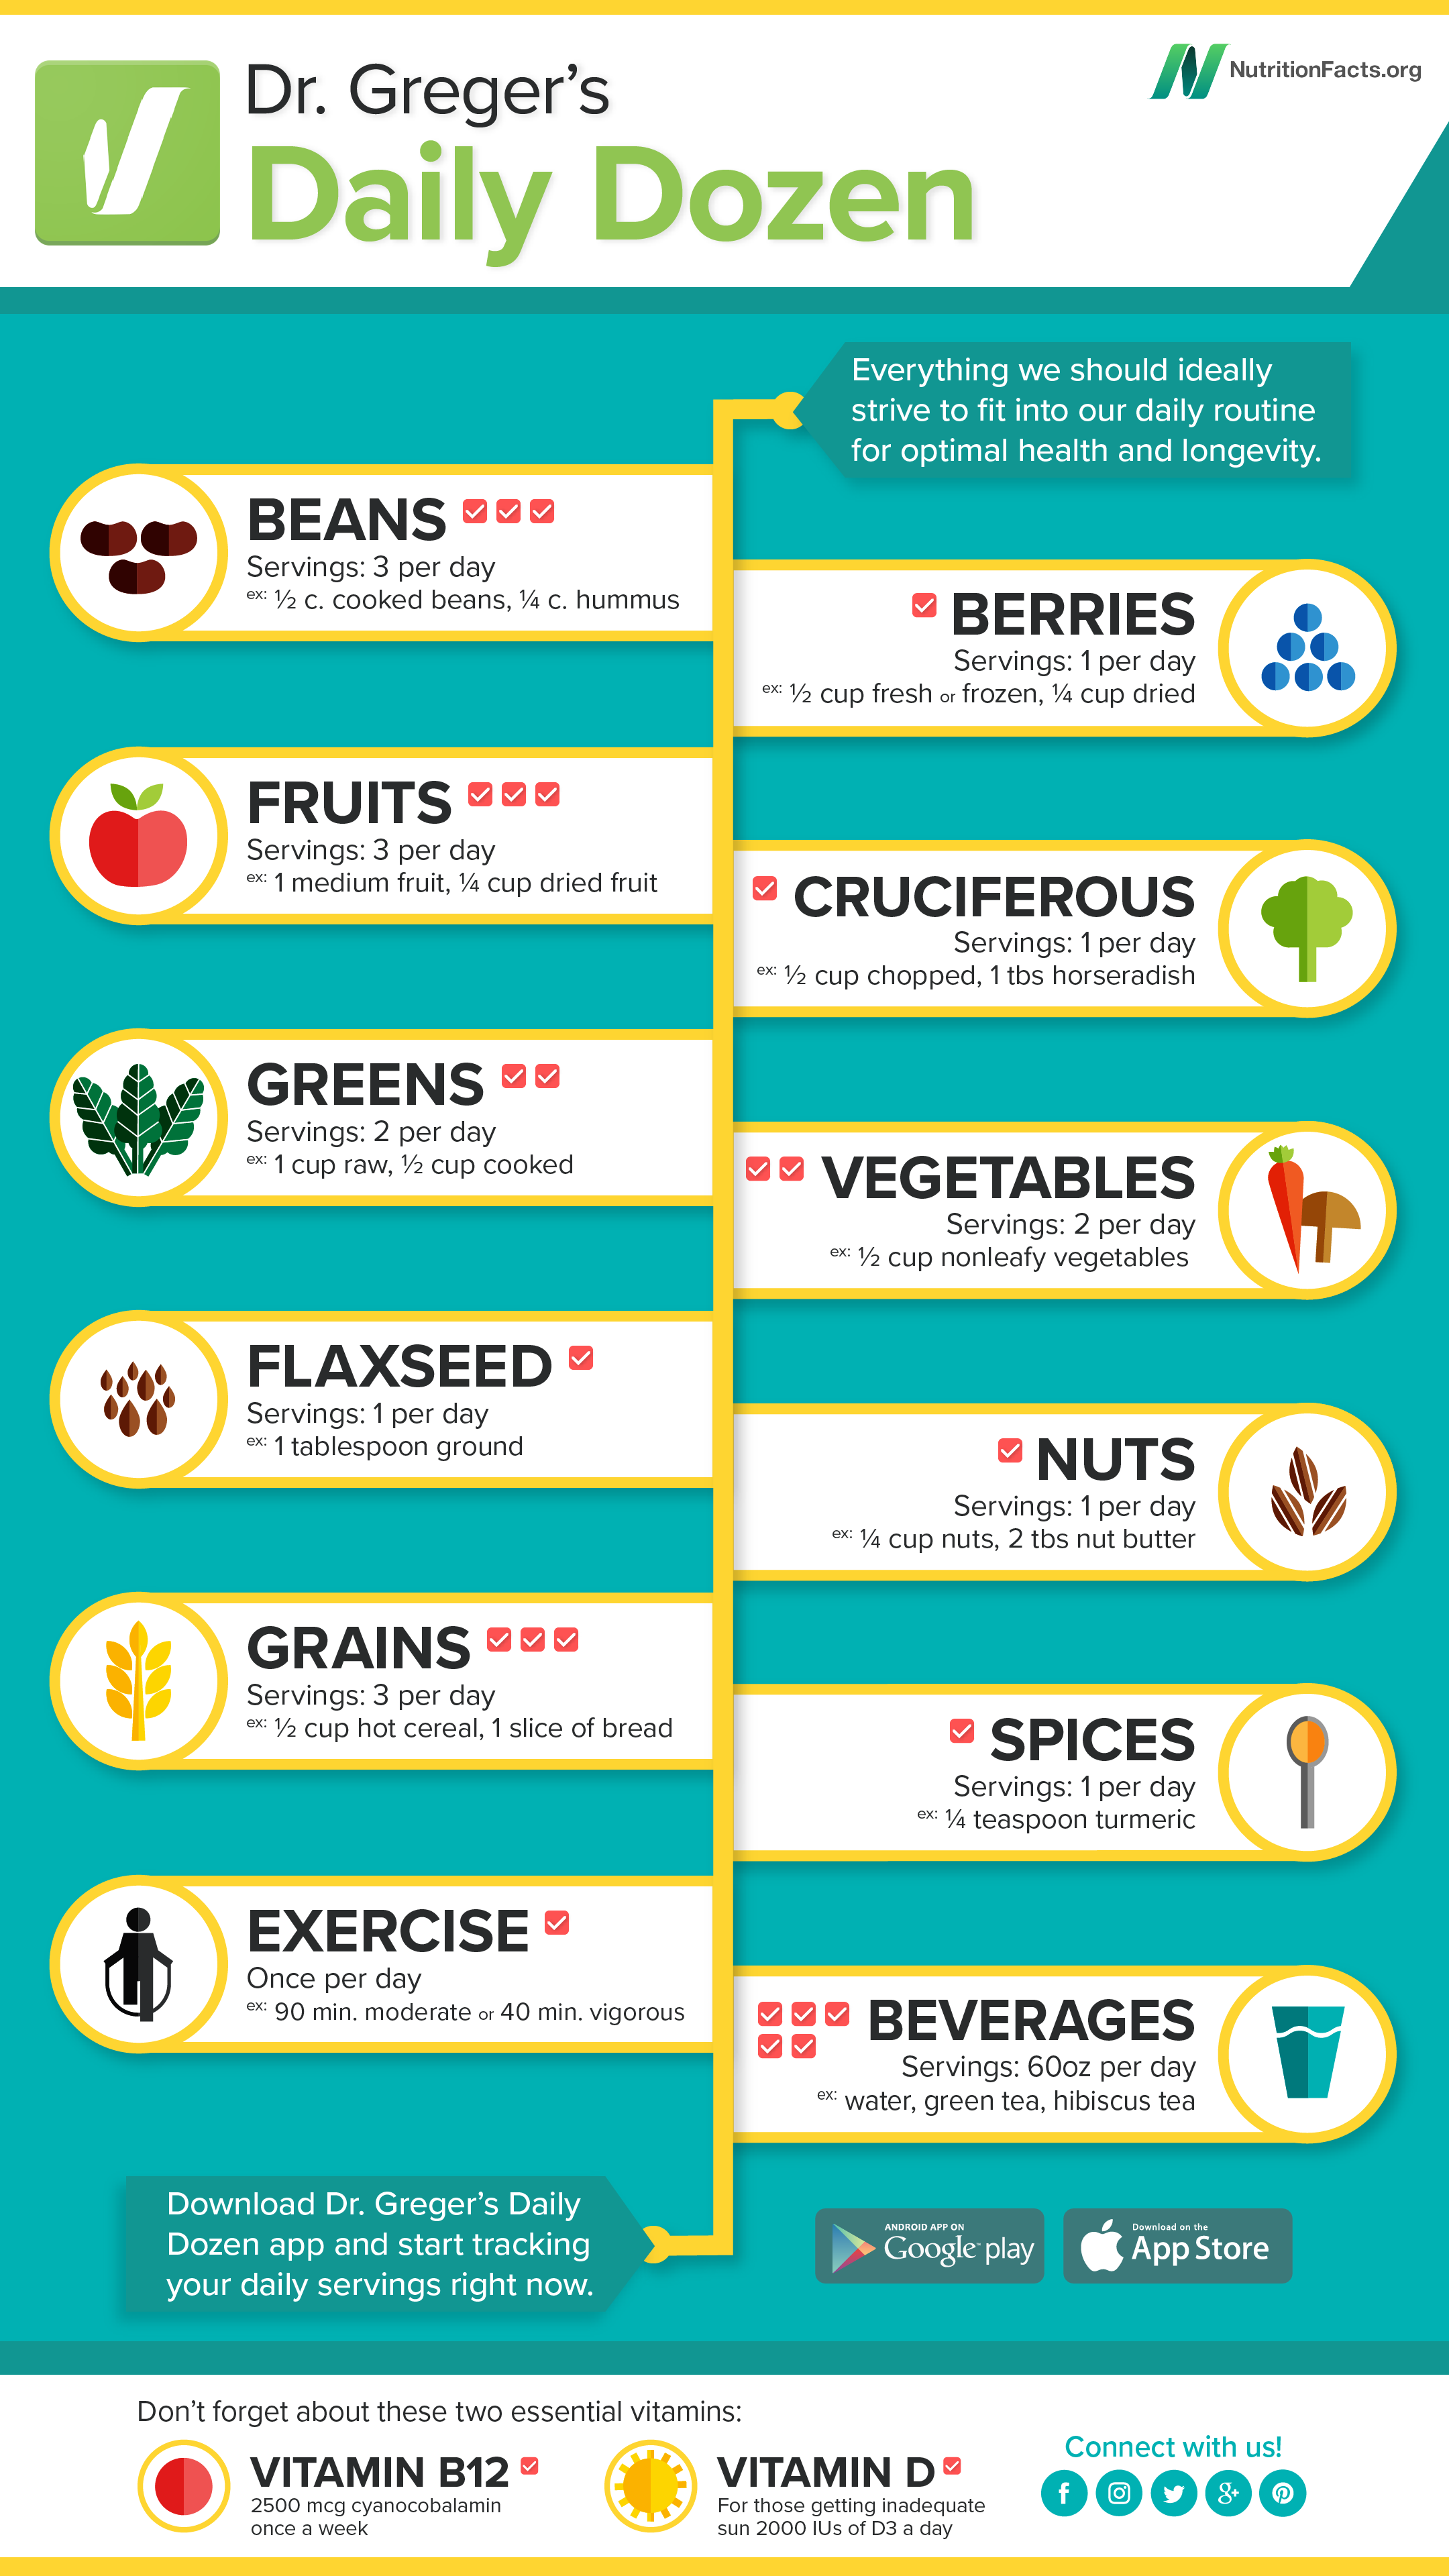 The Daily Dozen checklist, copyright belongs to  NutritionFacts.org , attribution license. Click to view the original image so that you can print it or save it. You can also download the app to keep track of your foods every day.